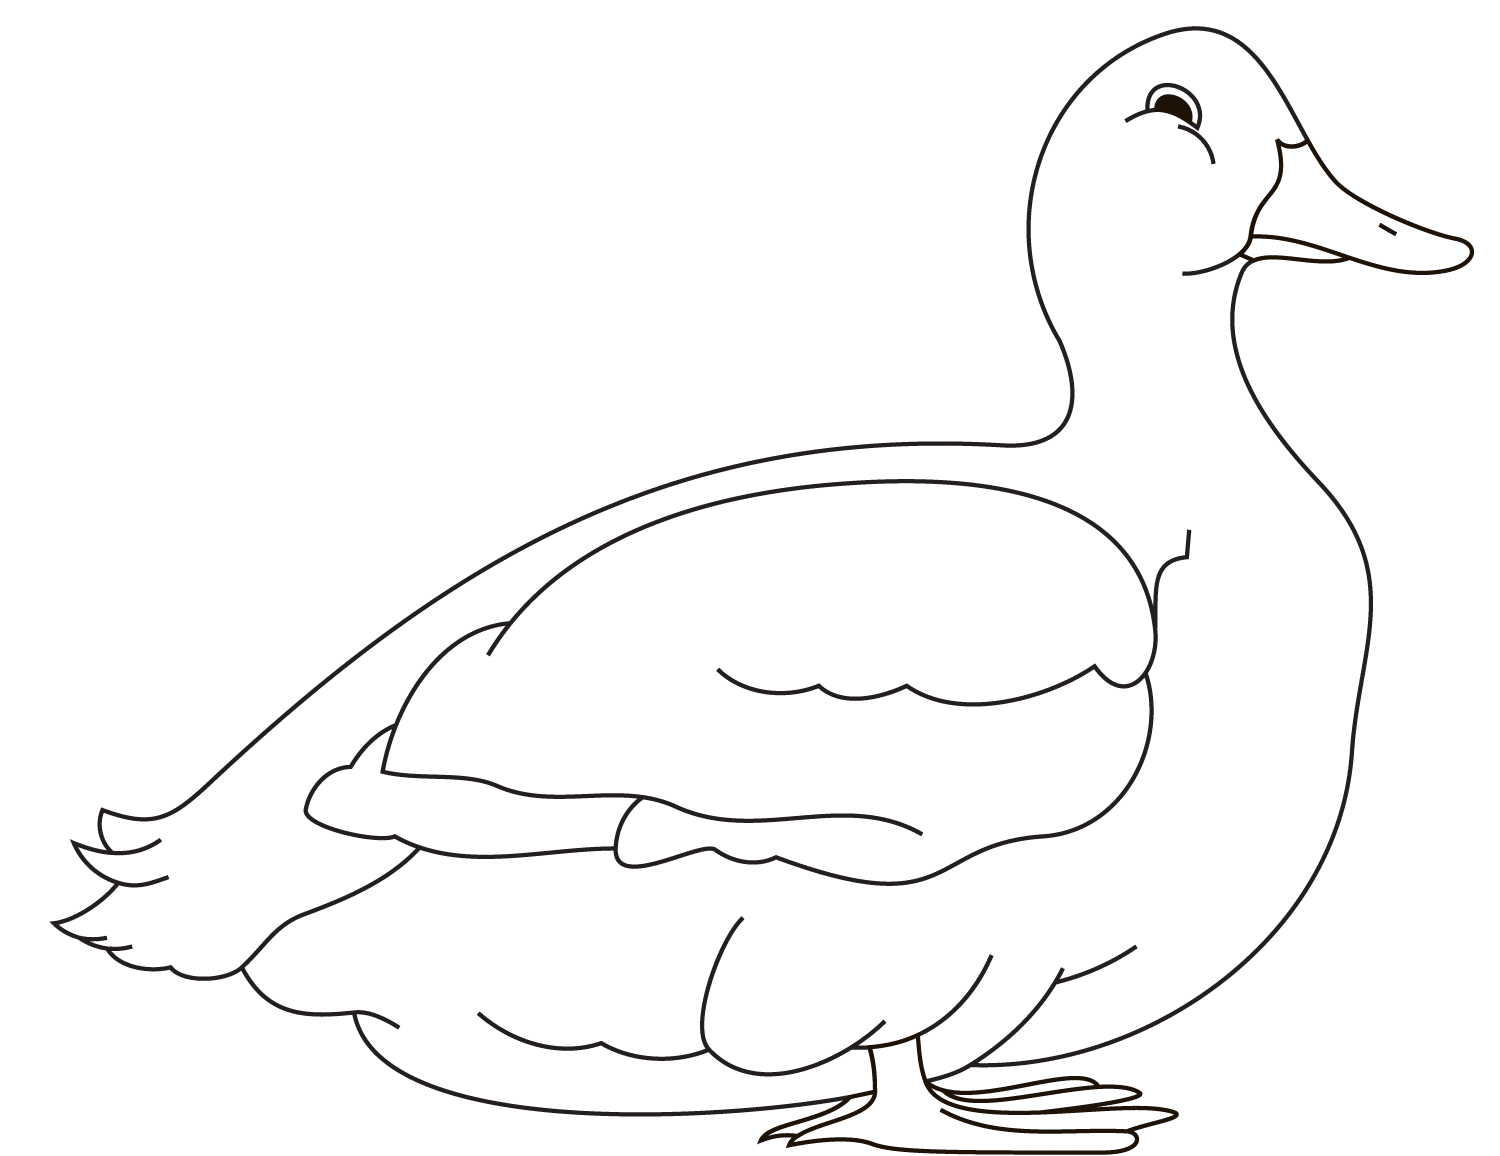 Drawing simple duck for children Coloring Pages